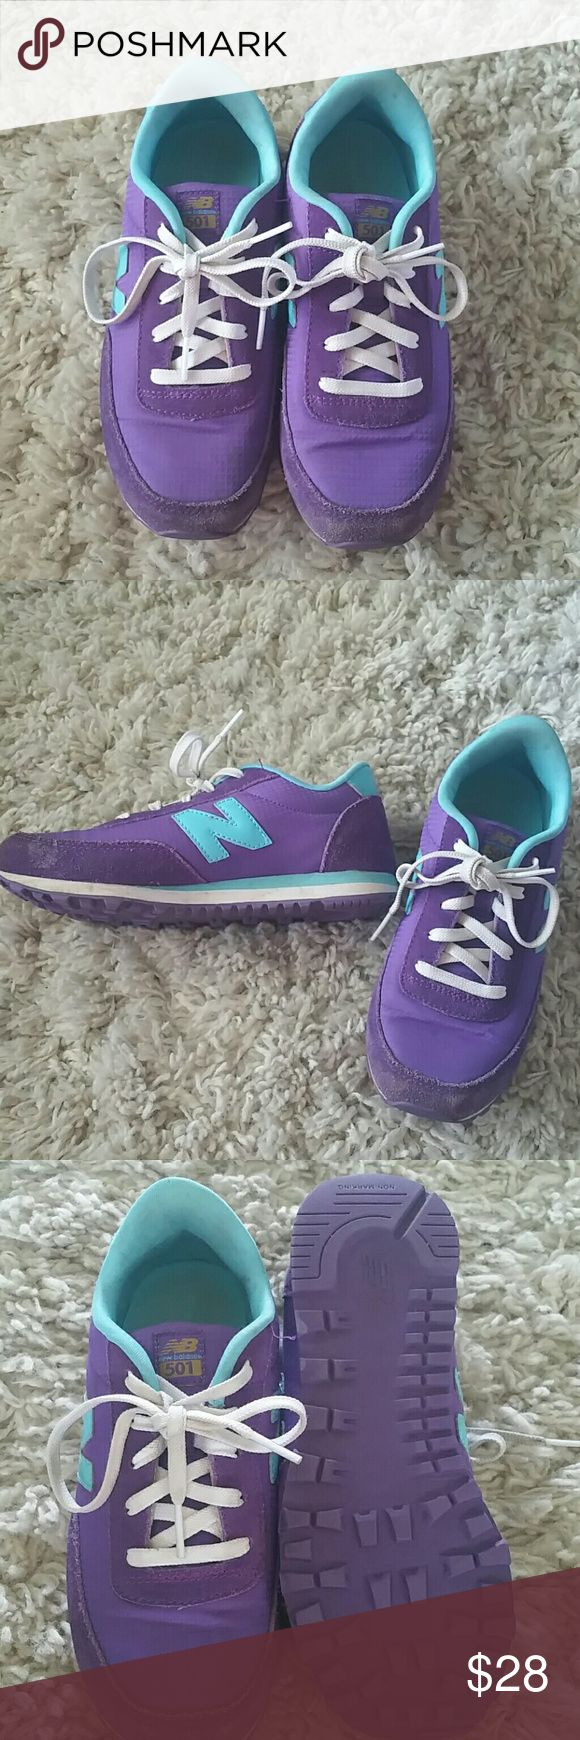 Youth New Balance '501' walking shoes My daughter wore these 3 times before outgrowing them. Excellent condition. Purple and teal colors. New Balance Shoes Sneakers